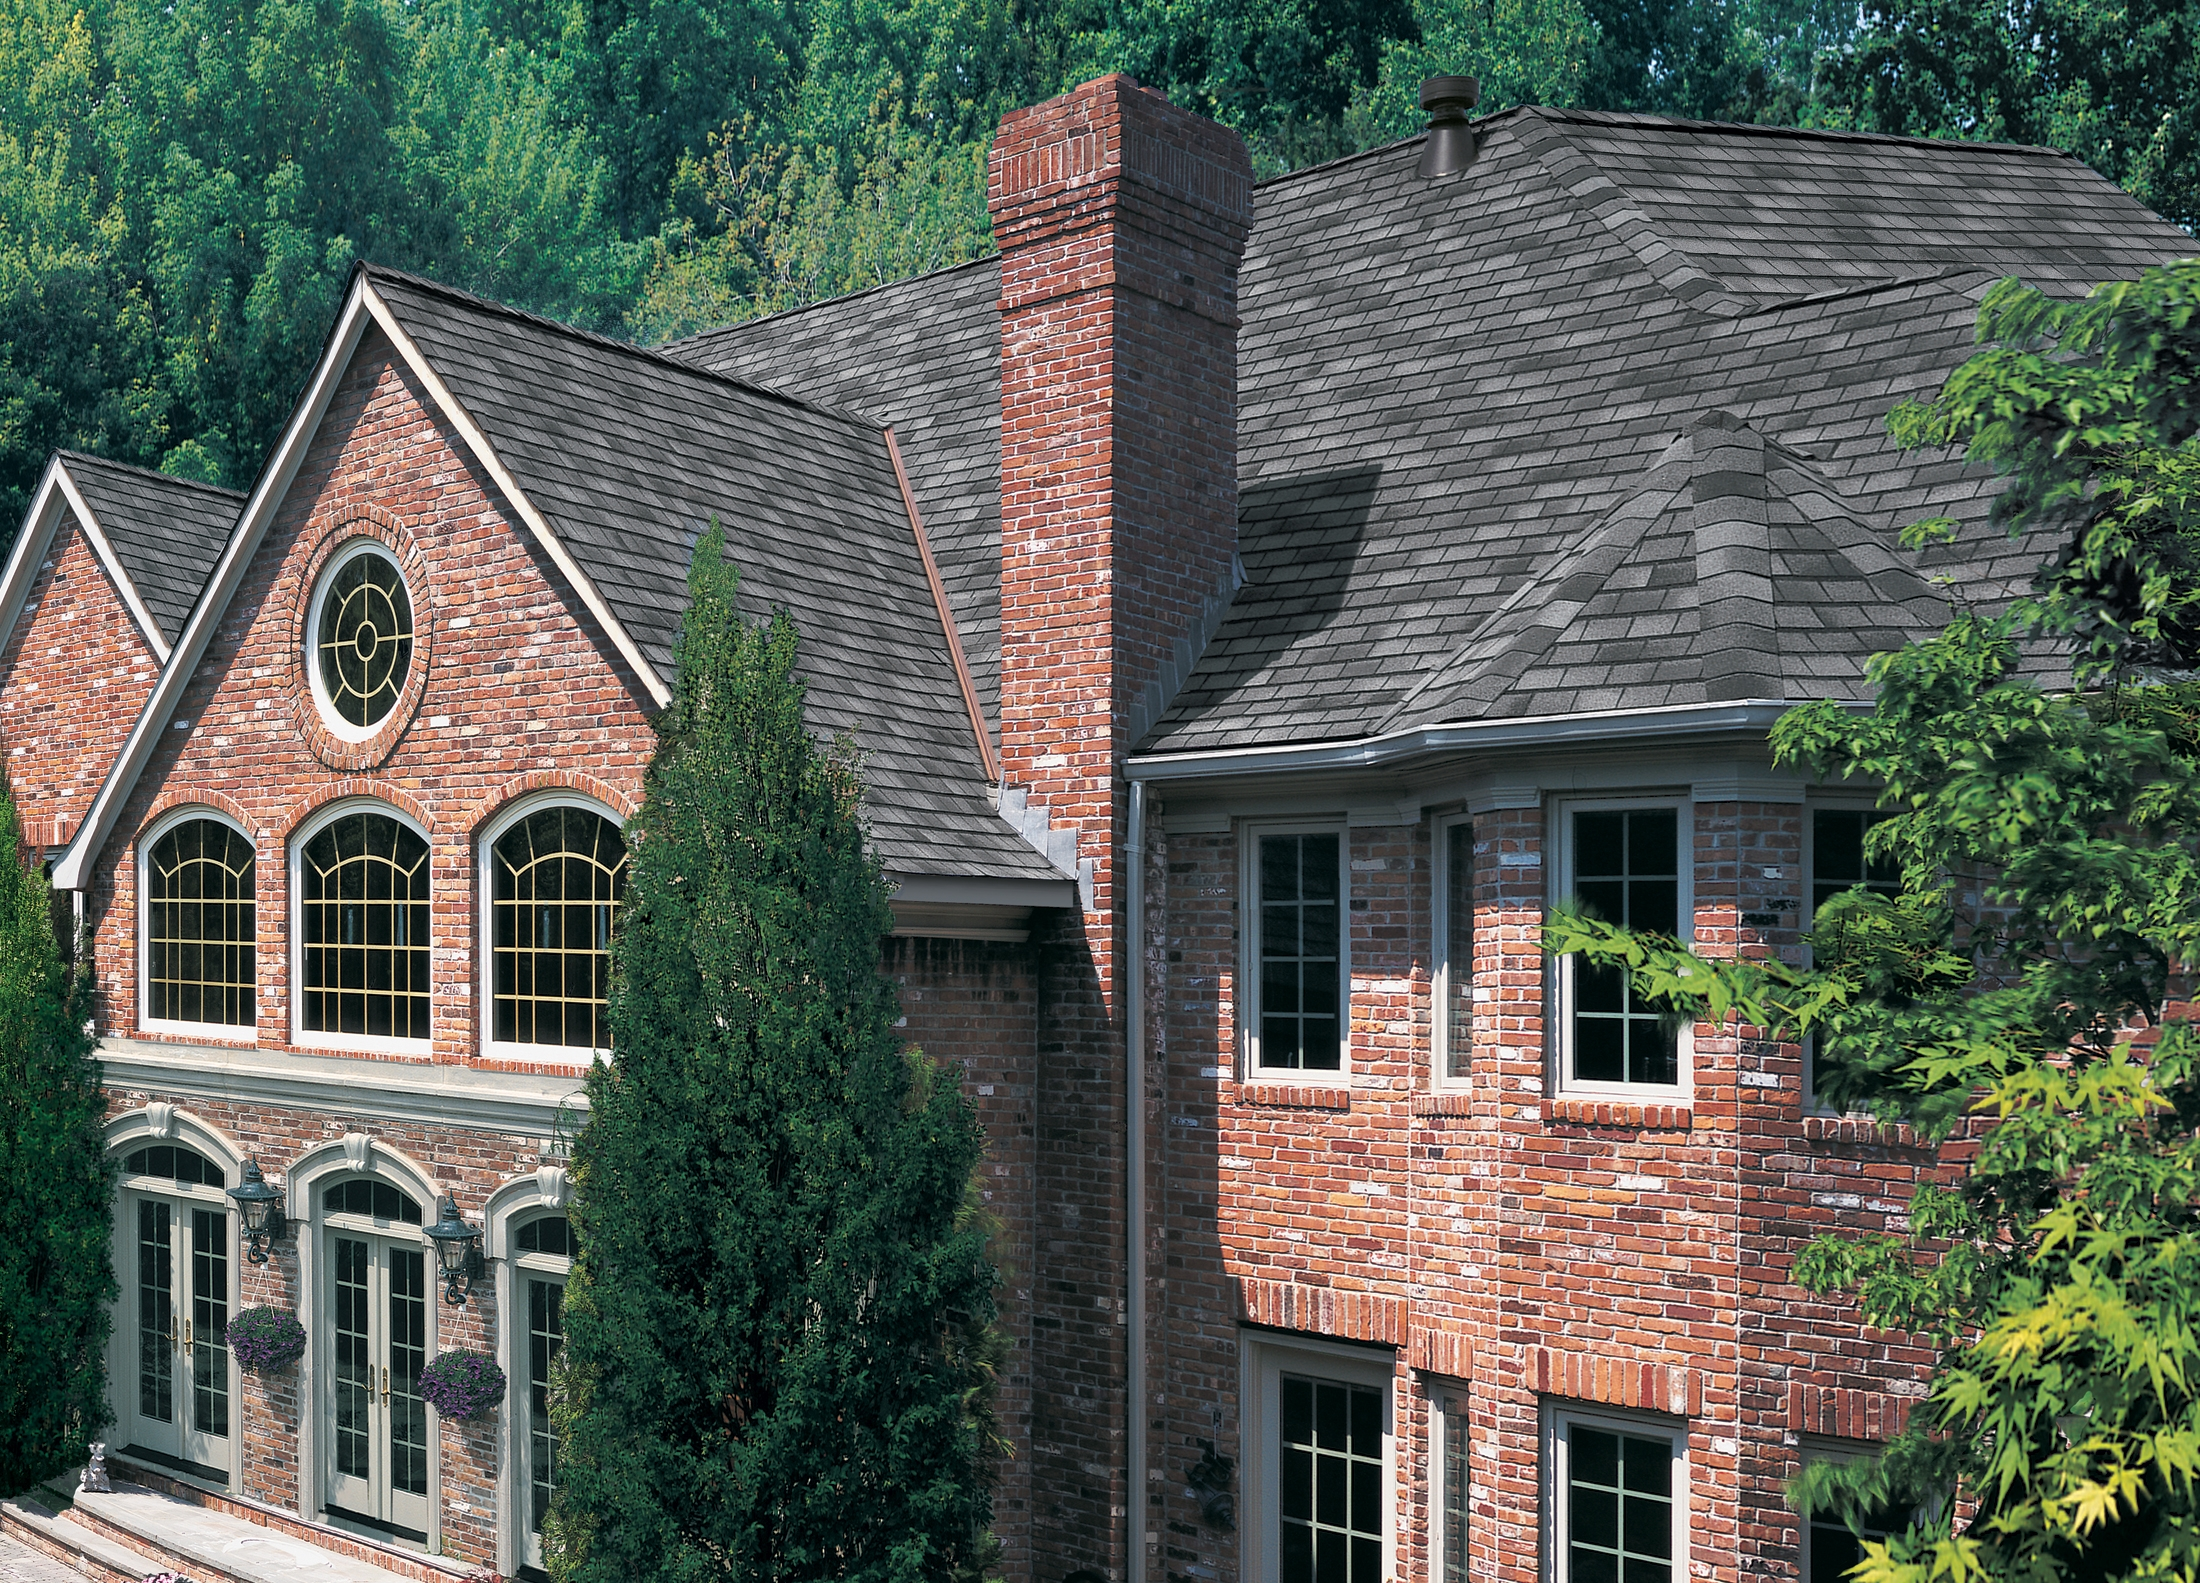 GAF_Slateline_English_Gray SM Slateline_Royal_Slate_House_Photo SM